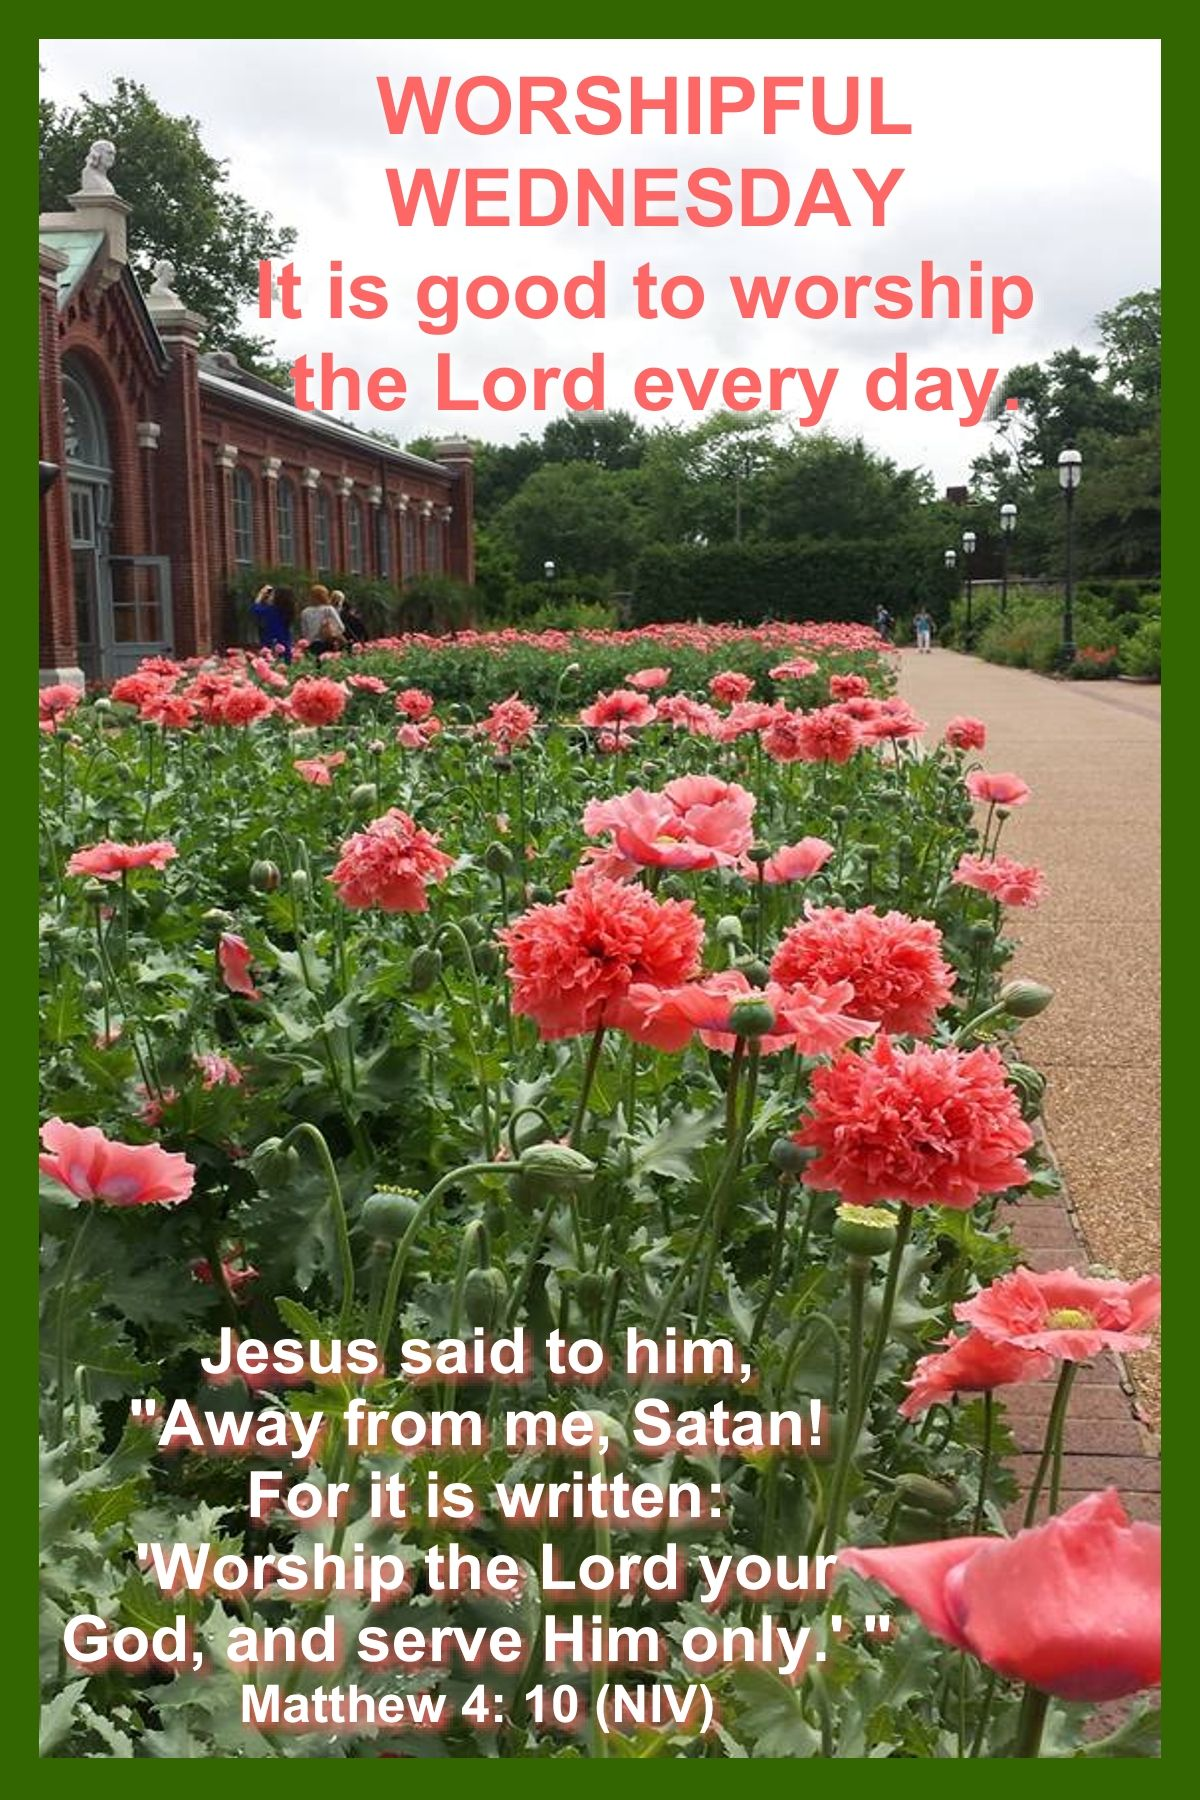 Pin by rosa well on wednesday blessings pinterest wednesday pin by rosa well on wednesday blessings pinterest wednesday greetings blessings and scriptures kristyandbryce Images